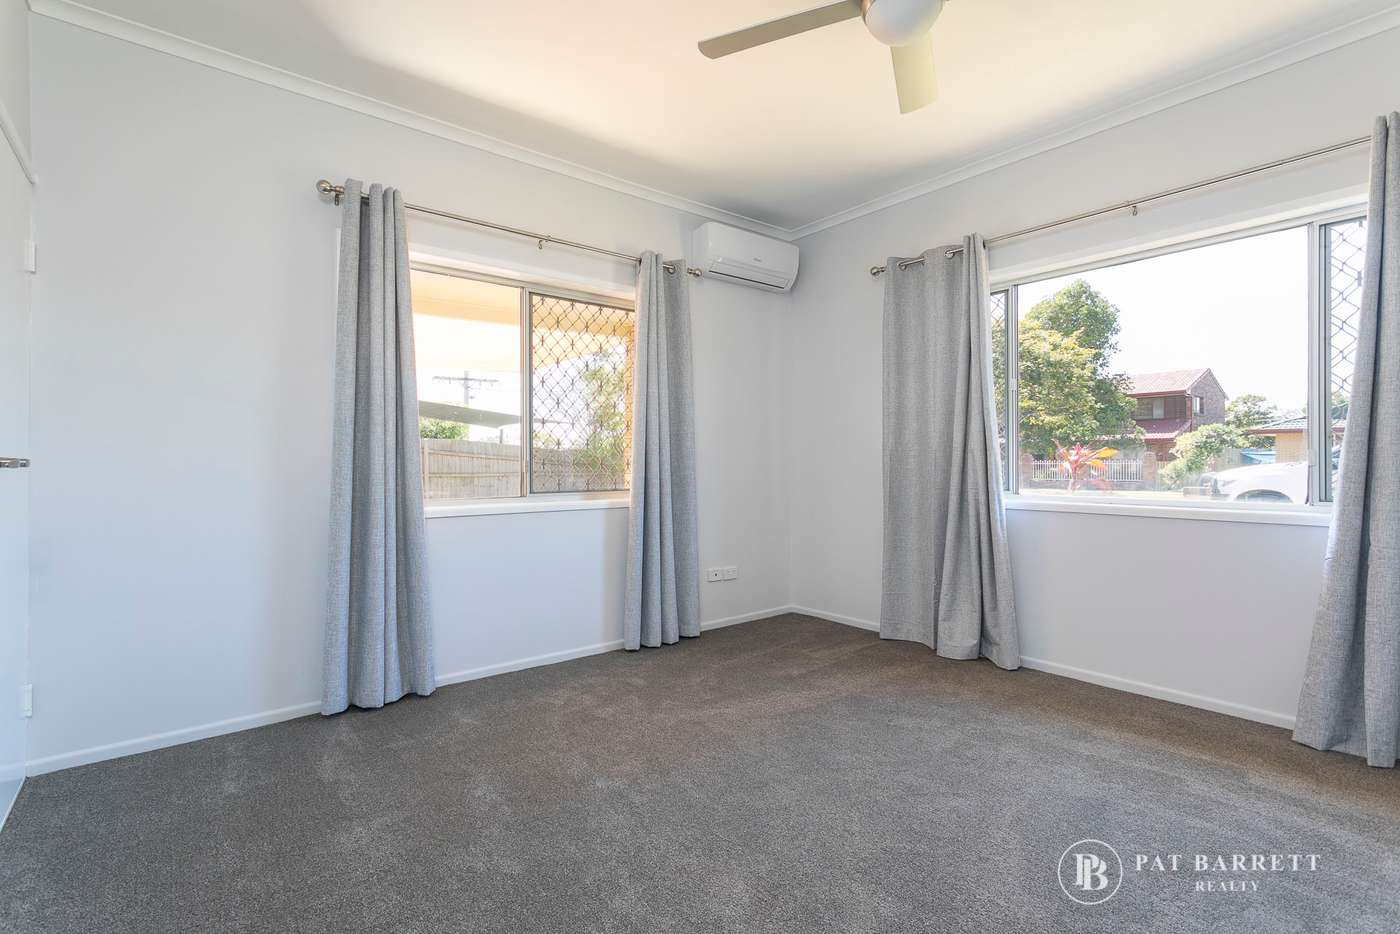 Fifth view of Homely house listing, 94 Valantine Road, Birkdale QLD 4159